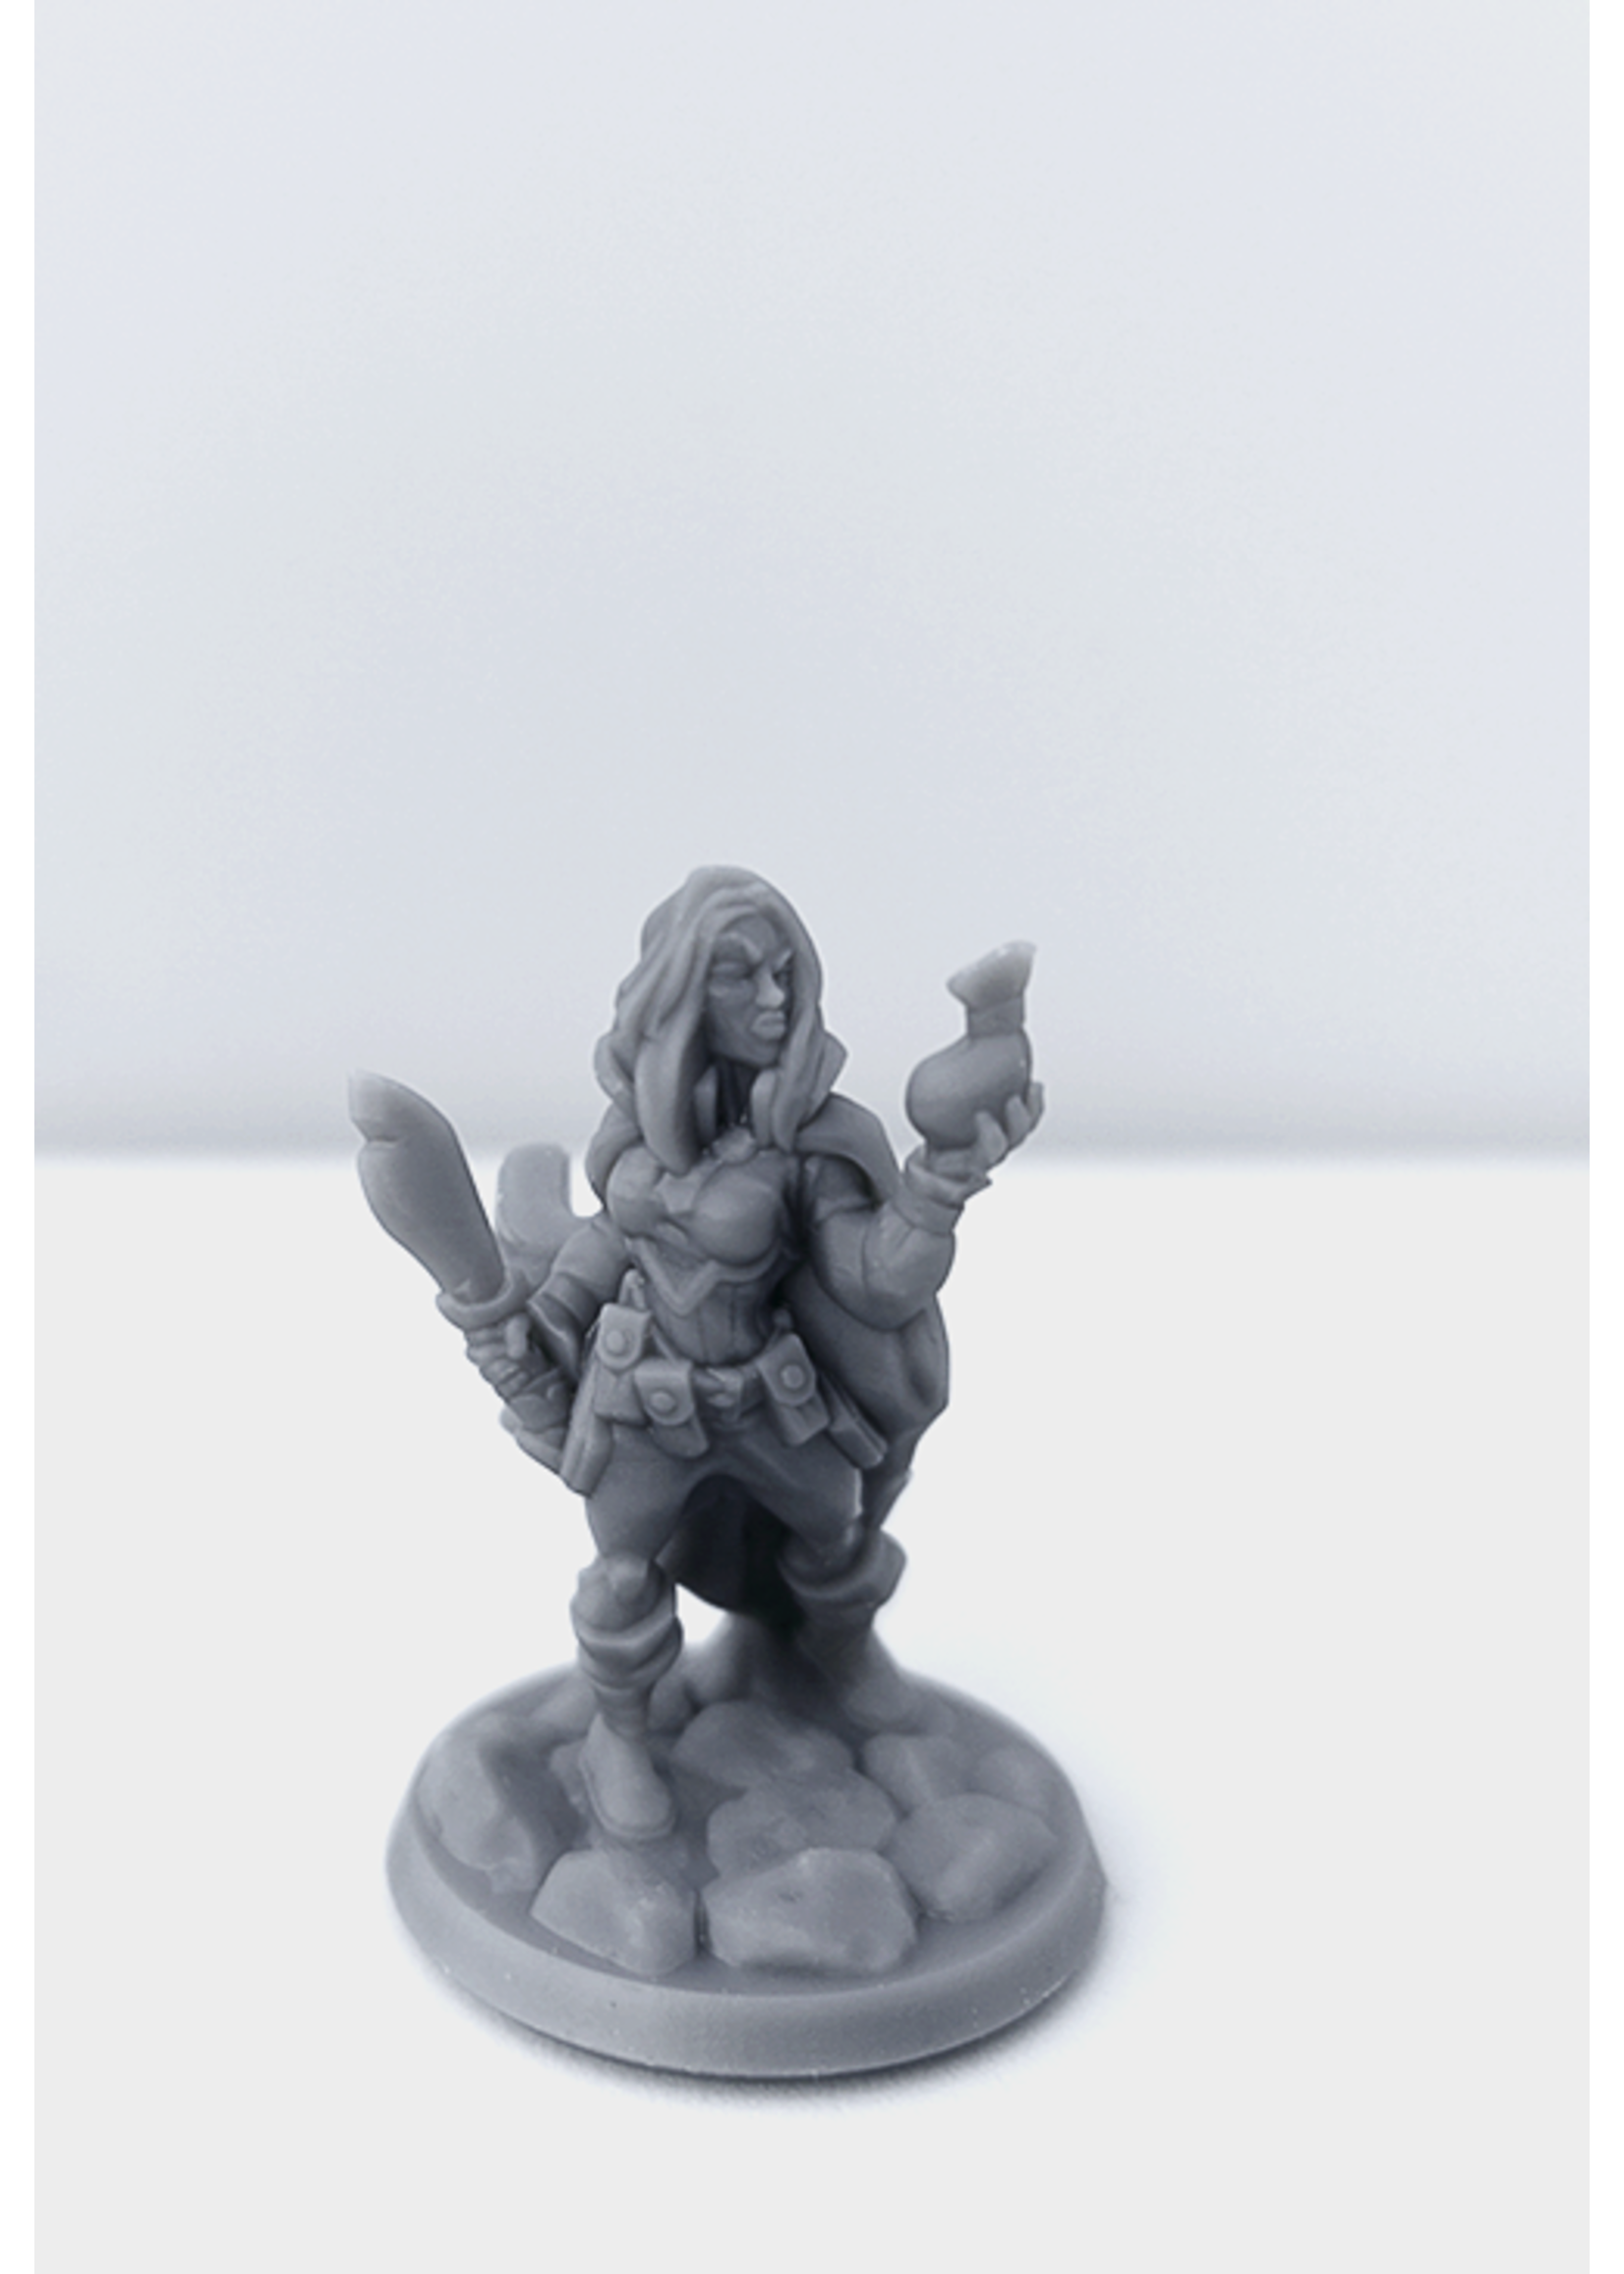 3D Printed Miniature - Thief Female 01 - Dungeons & Dragons - Hero of the Realm KS